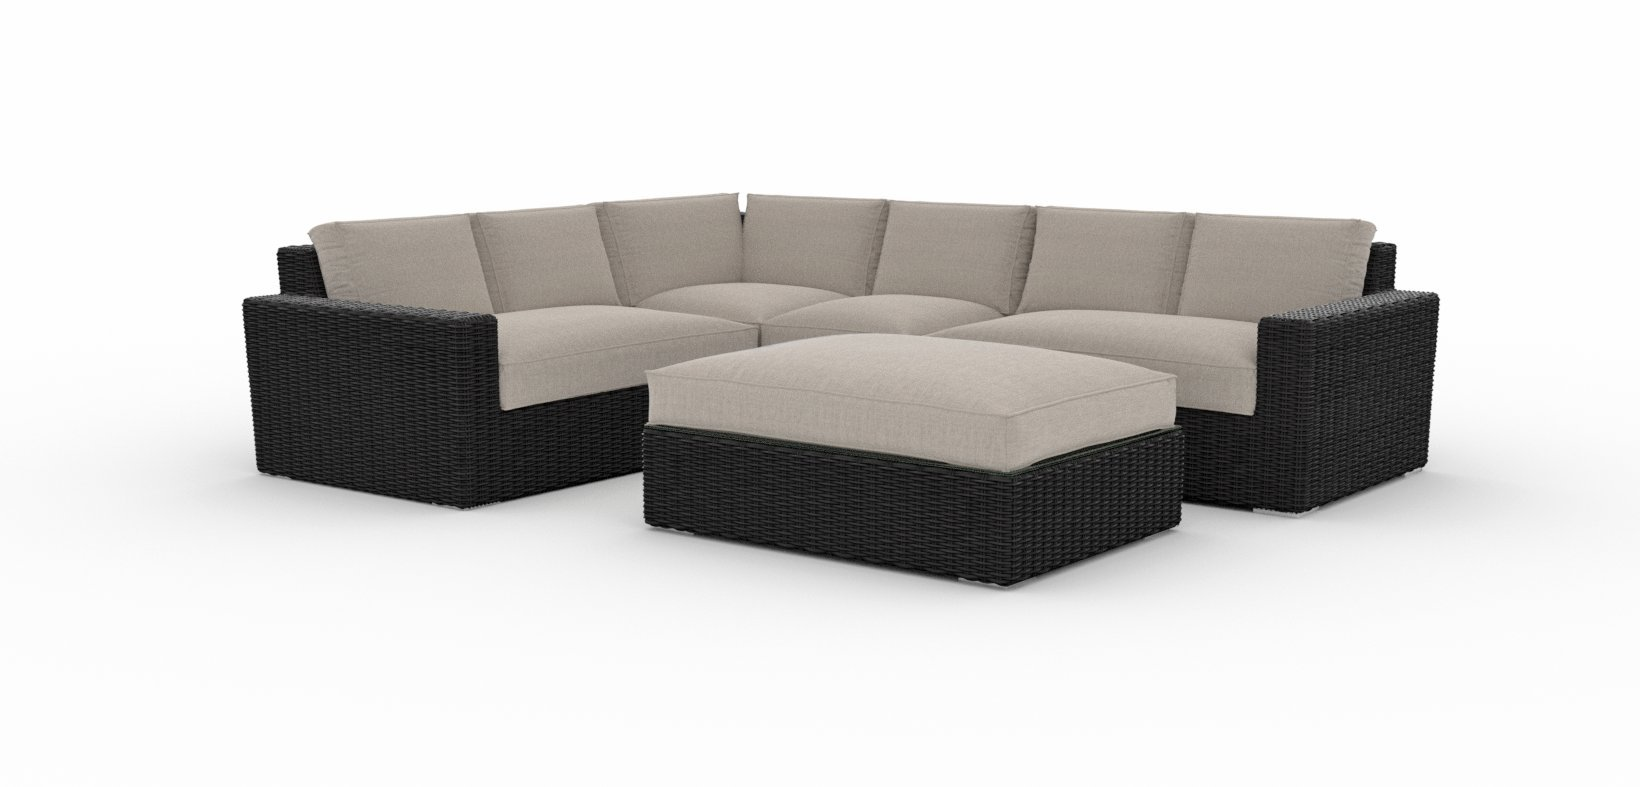 Toja Turo Outdoor Patio Sectional Set (5 pcs) | Wicker Rattan Body with Sunbrella Cushions (Half Round Wicker/Cast Ash) - BEAUTIFUL DESIGN & UNMATCHED COMFORT - Our Turo line is a modern take on an old favorite. Its' tall back provides extra back support and creates a deep and comfortable seat. Turo's straight lines and aesthetic design look great on any patio or in any outdoor space. ALL-WEATHER DURABLE WICKER BODY - This sectional set's durable construction ensure that you'll enjoy your Toja furniture for years to come. The furniture's powder coated aluminum frame is covered in a tight double weave of durable PE wicker rattan. SUNBRELLA CUSHIONS - The patio furniture set's cushions are crafted from high-density foam and a soft Sunbrella fabric which resists fading and keeps your furniture looking new. Along with being stain and mildew resistant, the Sunbrella fabric is suitable for all types of weather and provides unmatched protection from rain, sun, and other elements. - patio-furniture, patio, conversation-sets - 61DxcuFrcoL -